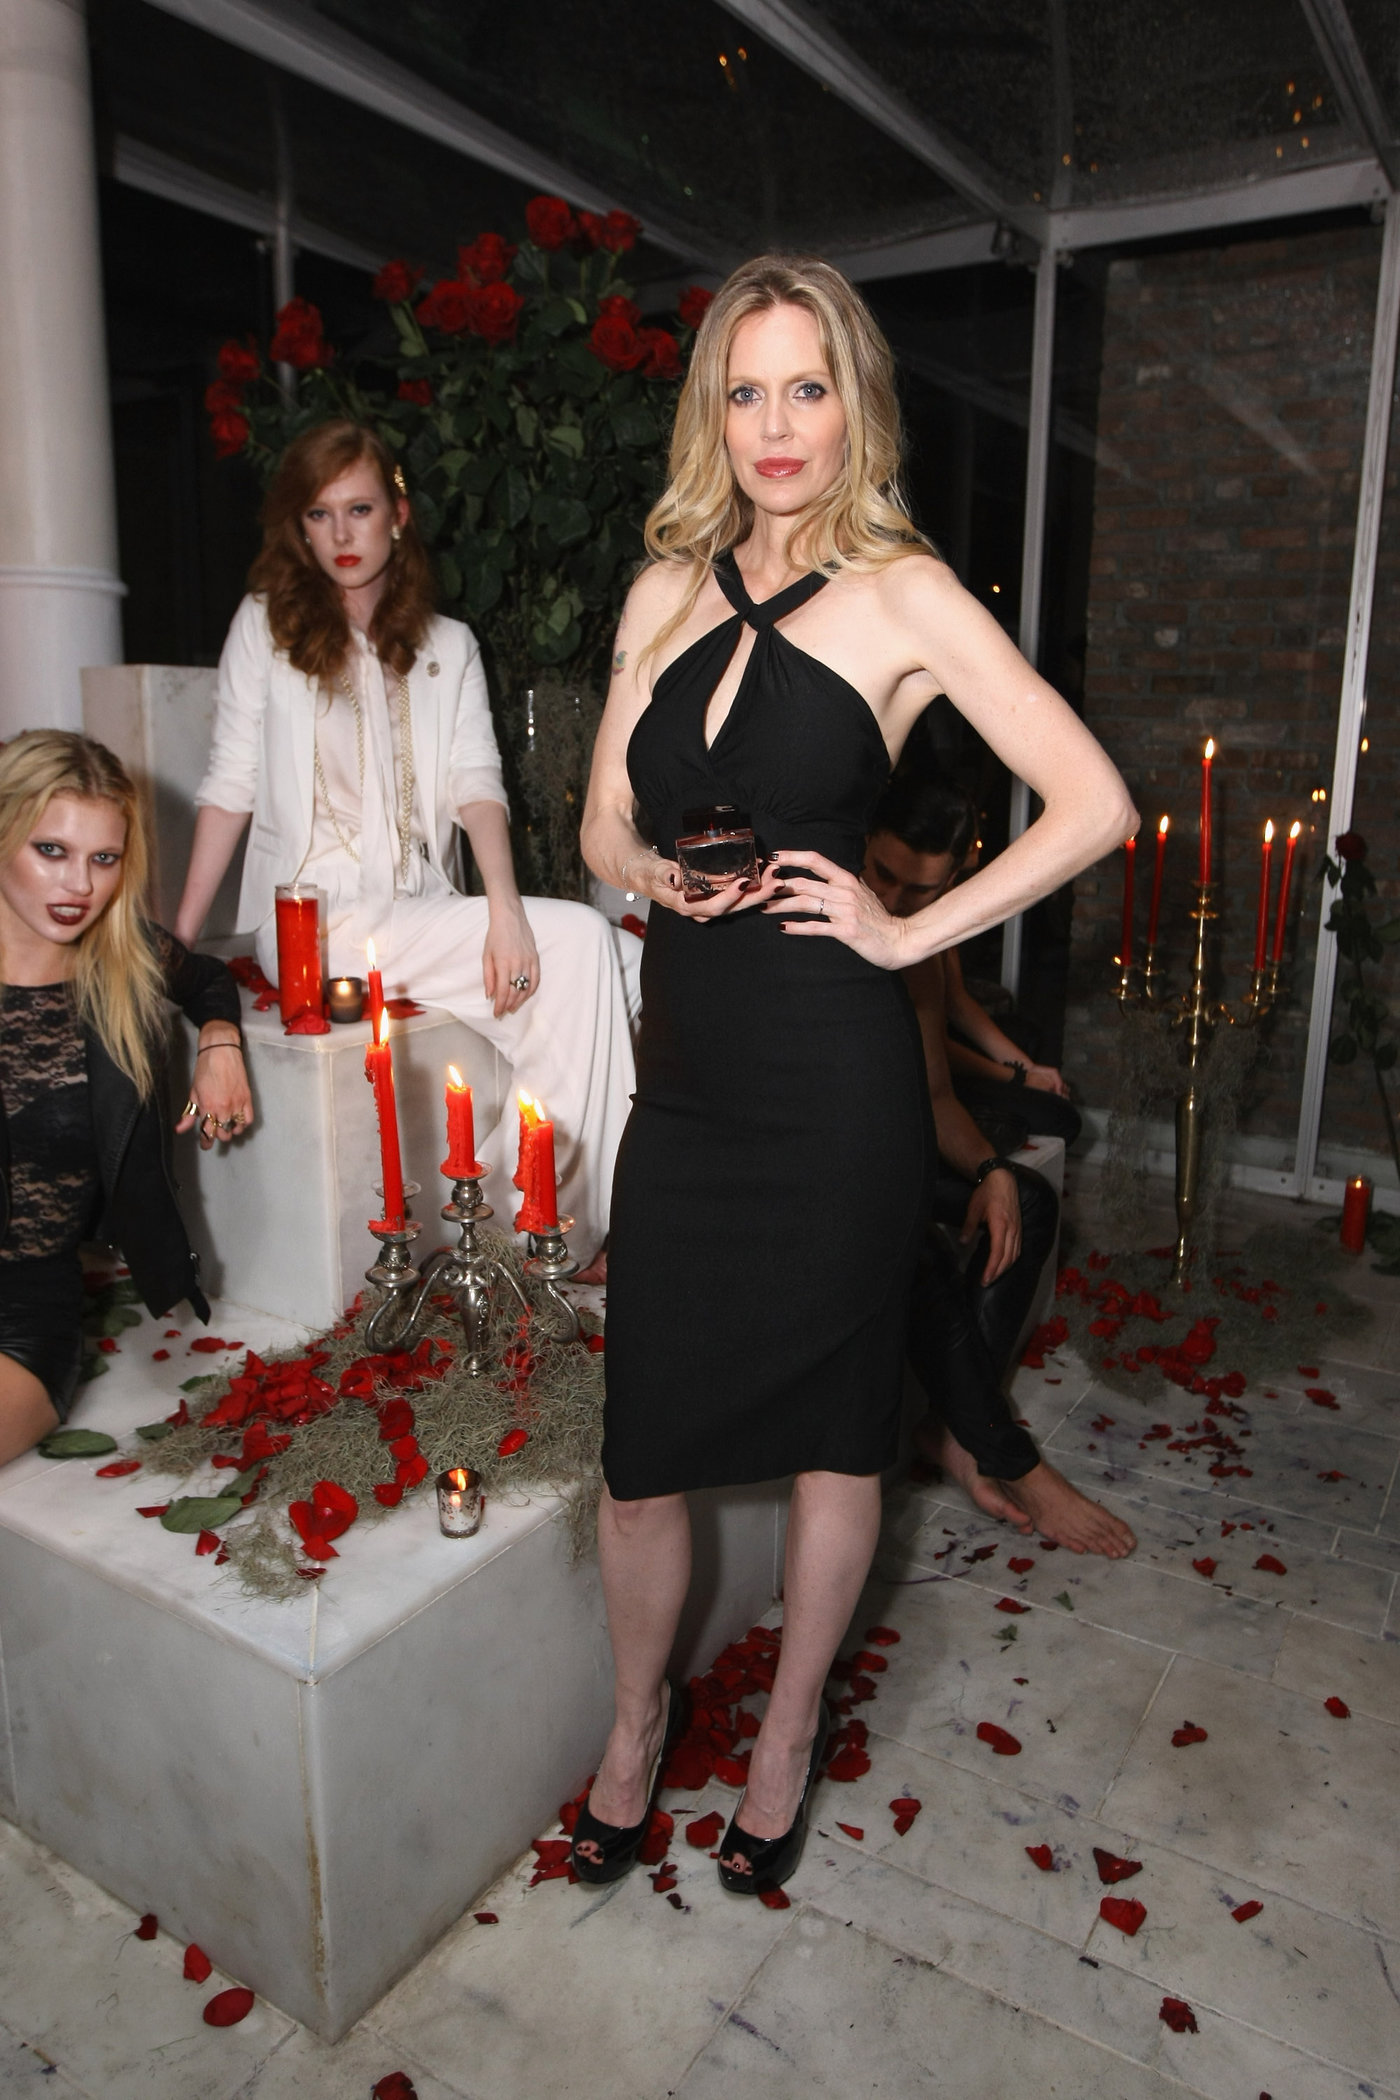 Kristin Bauer - HSN & HBO Launch Forsaken Inspired By True Blood in New York City (July 26, 2012)